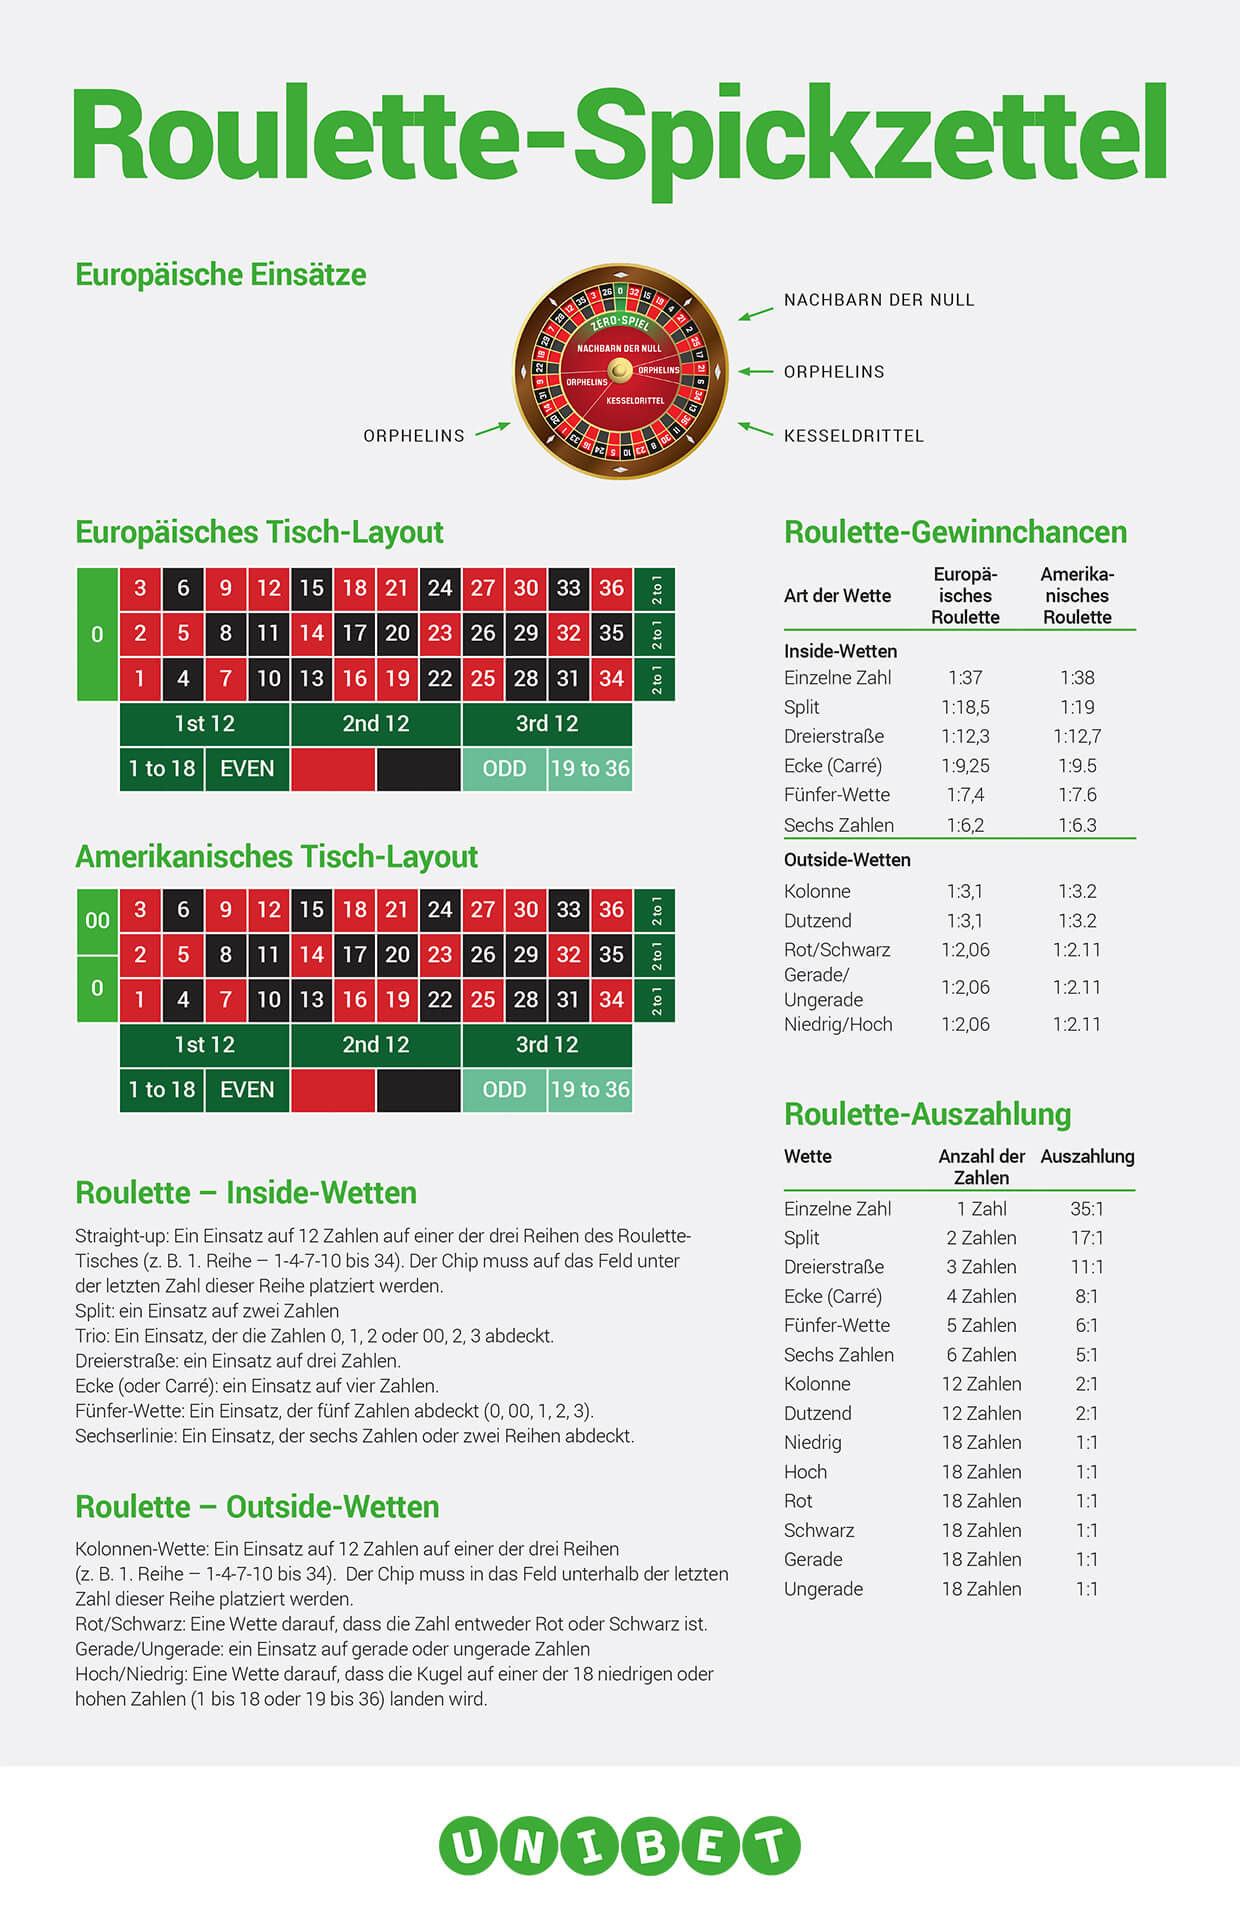 roulette cheat sheet de